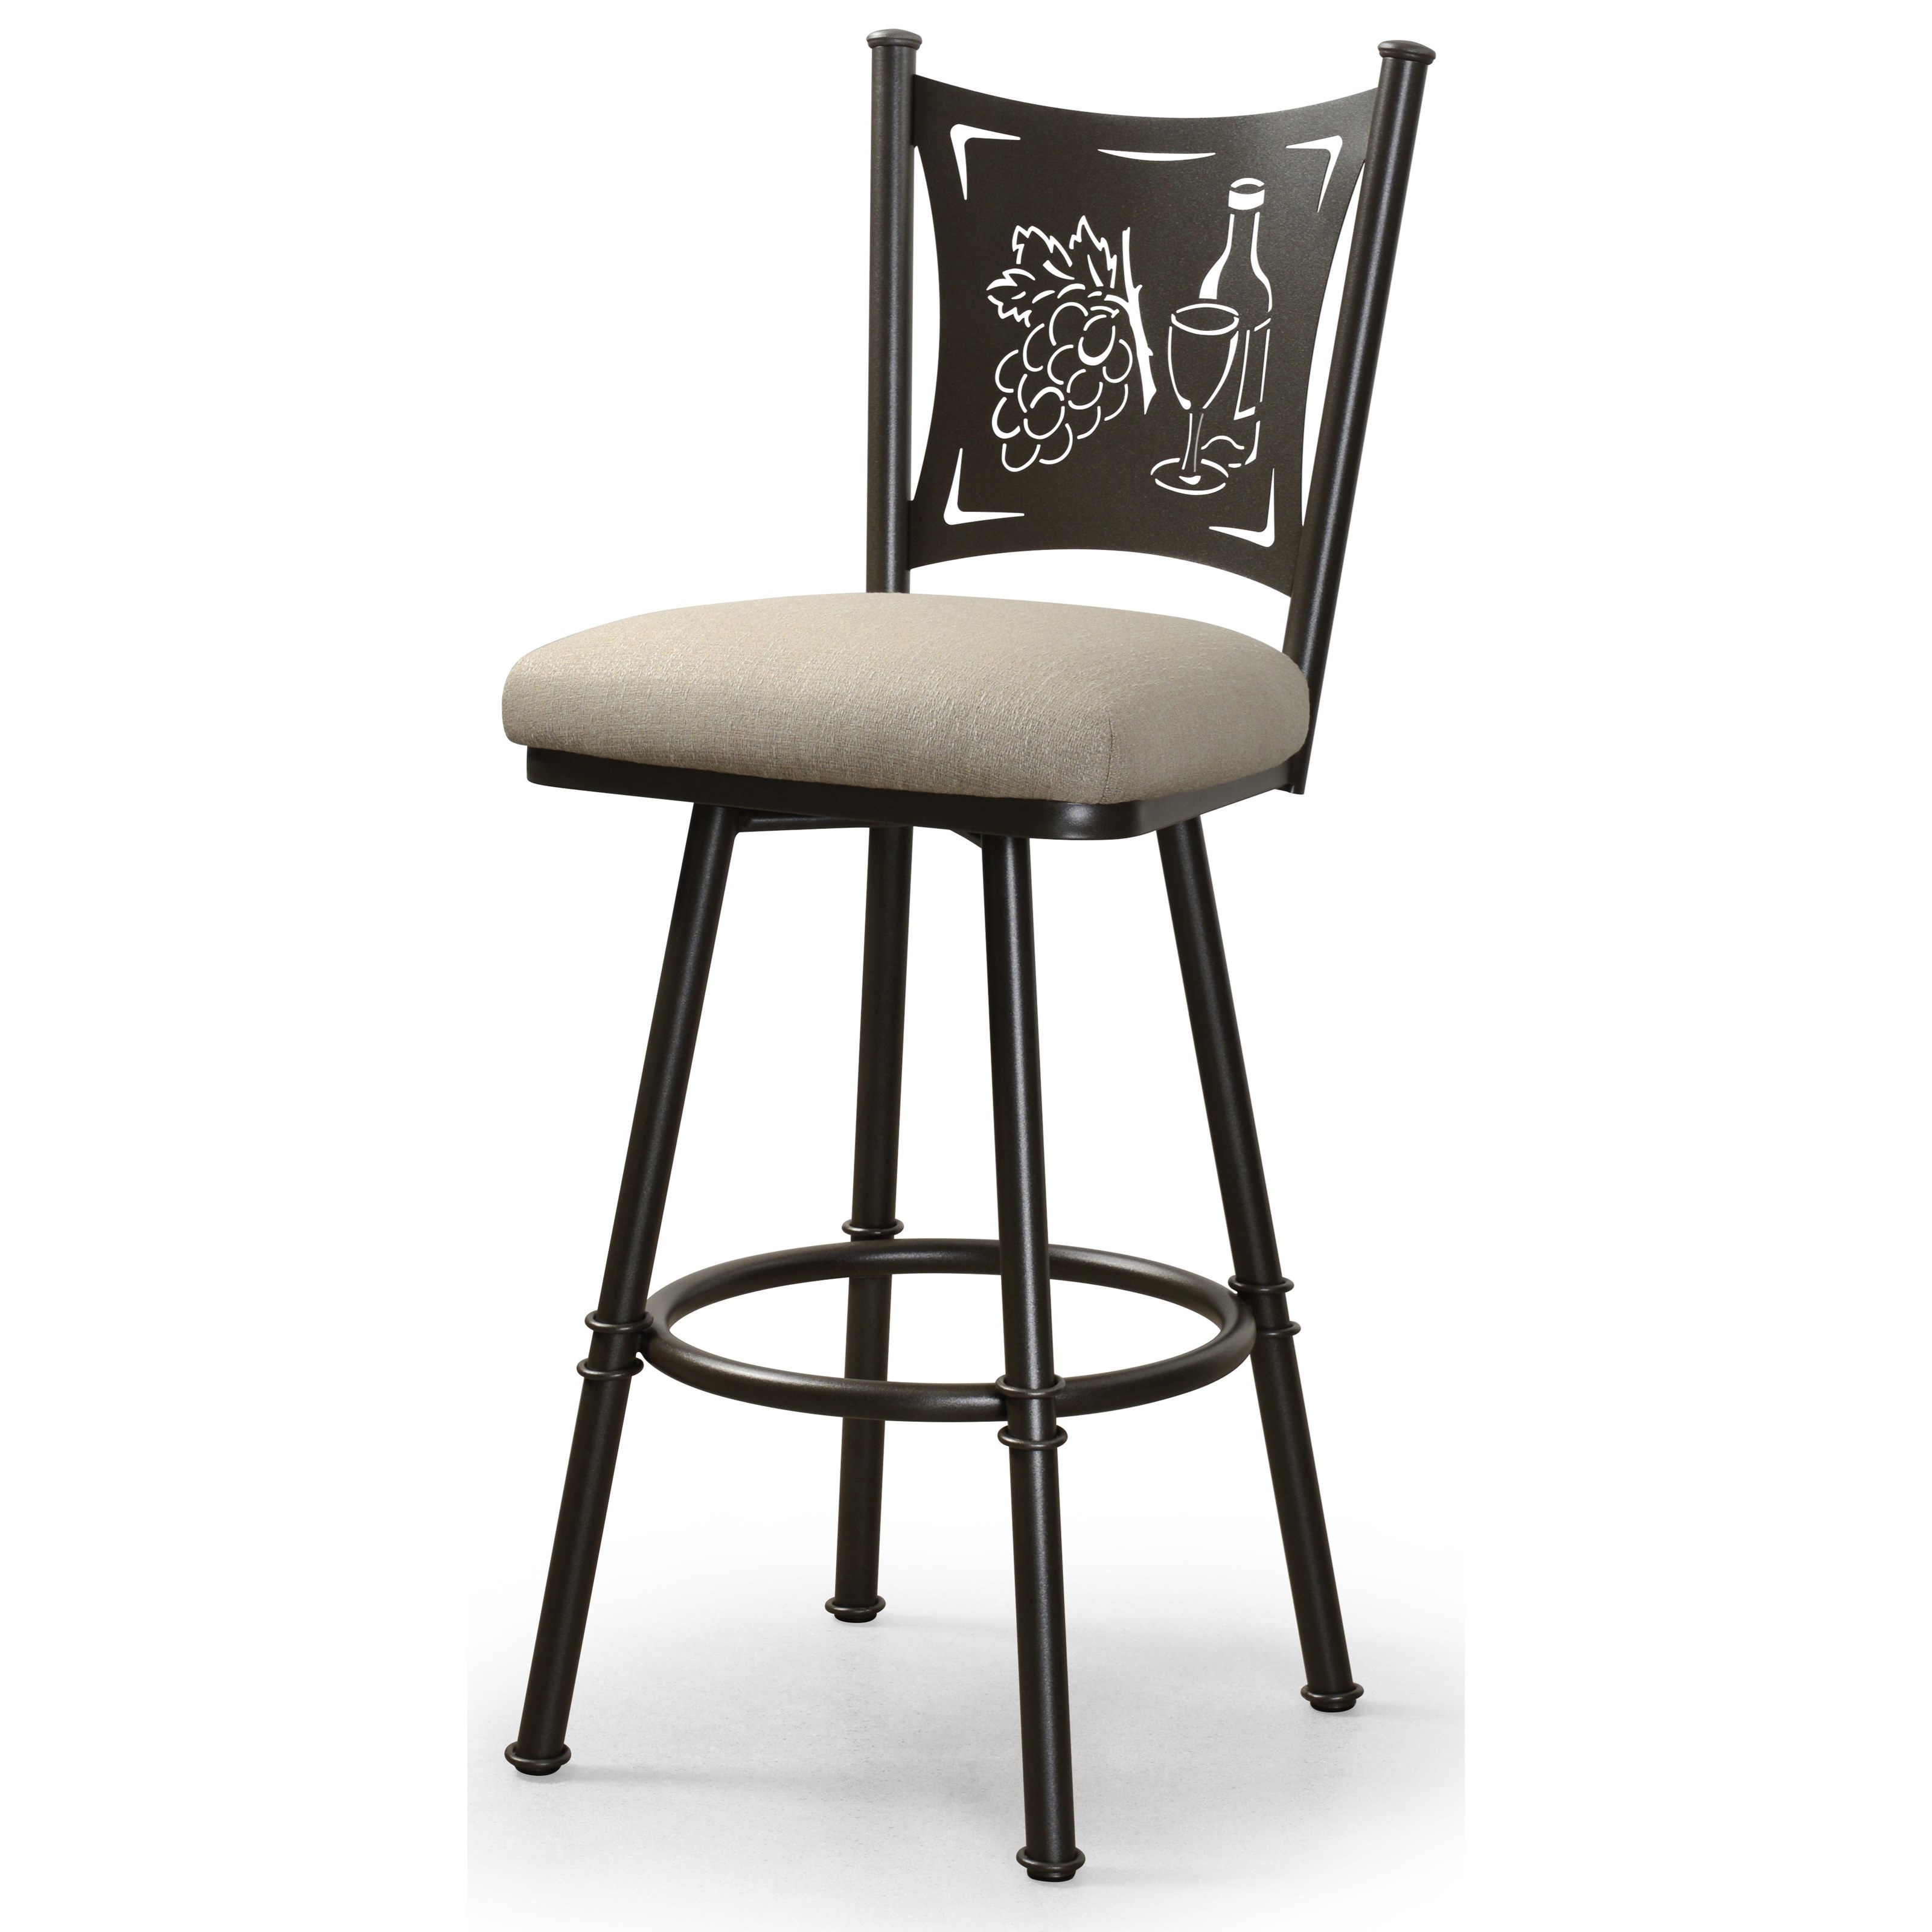 Trica Transitional Bar Stools Creation Collection I Bar